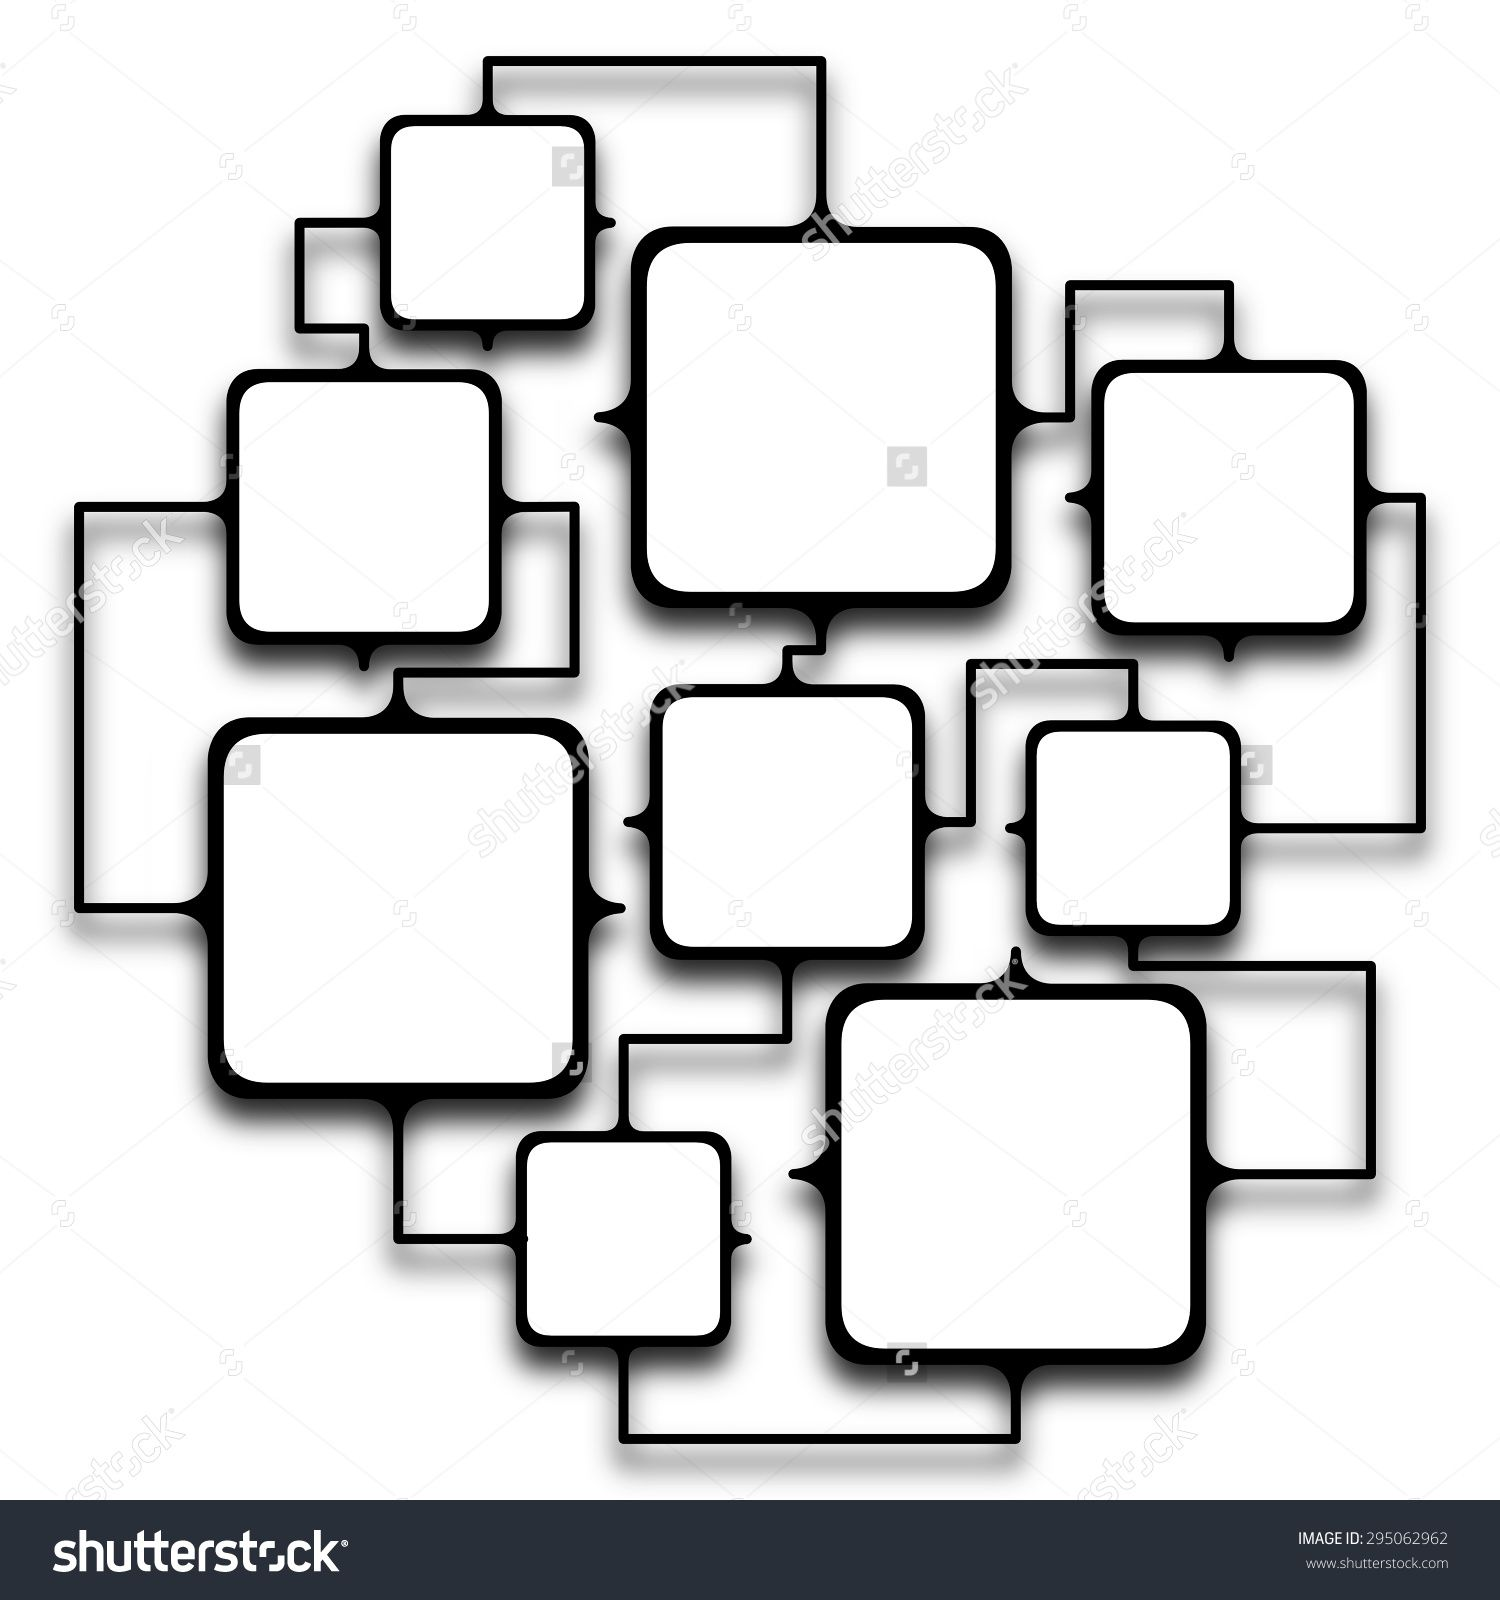 Multiple squared frames linked together on white background